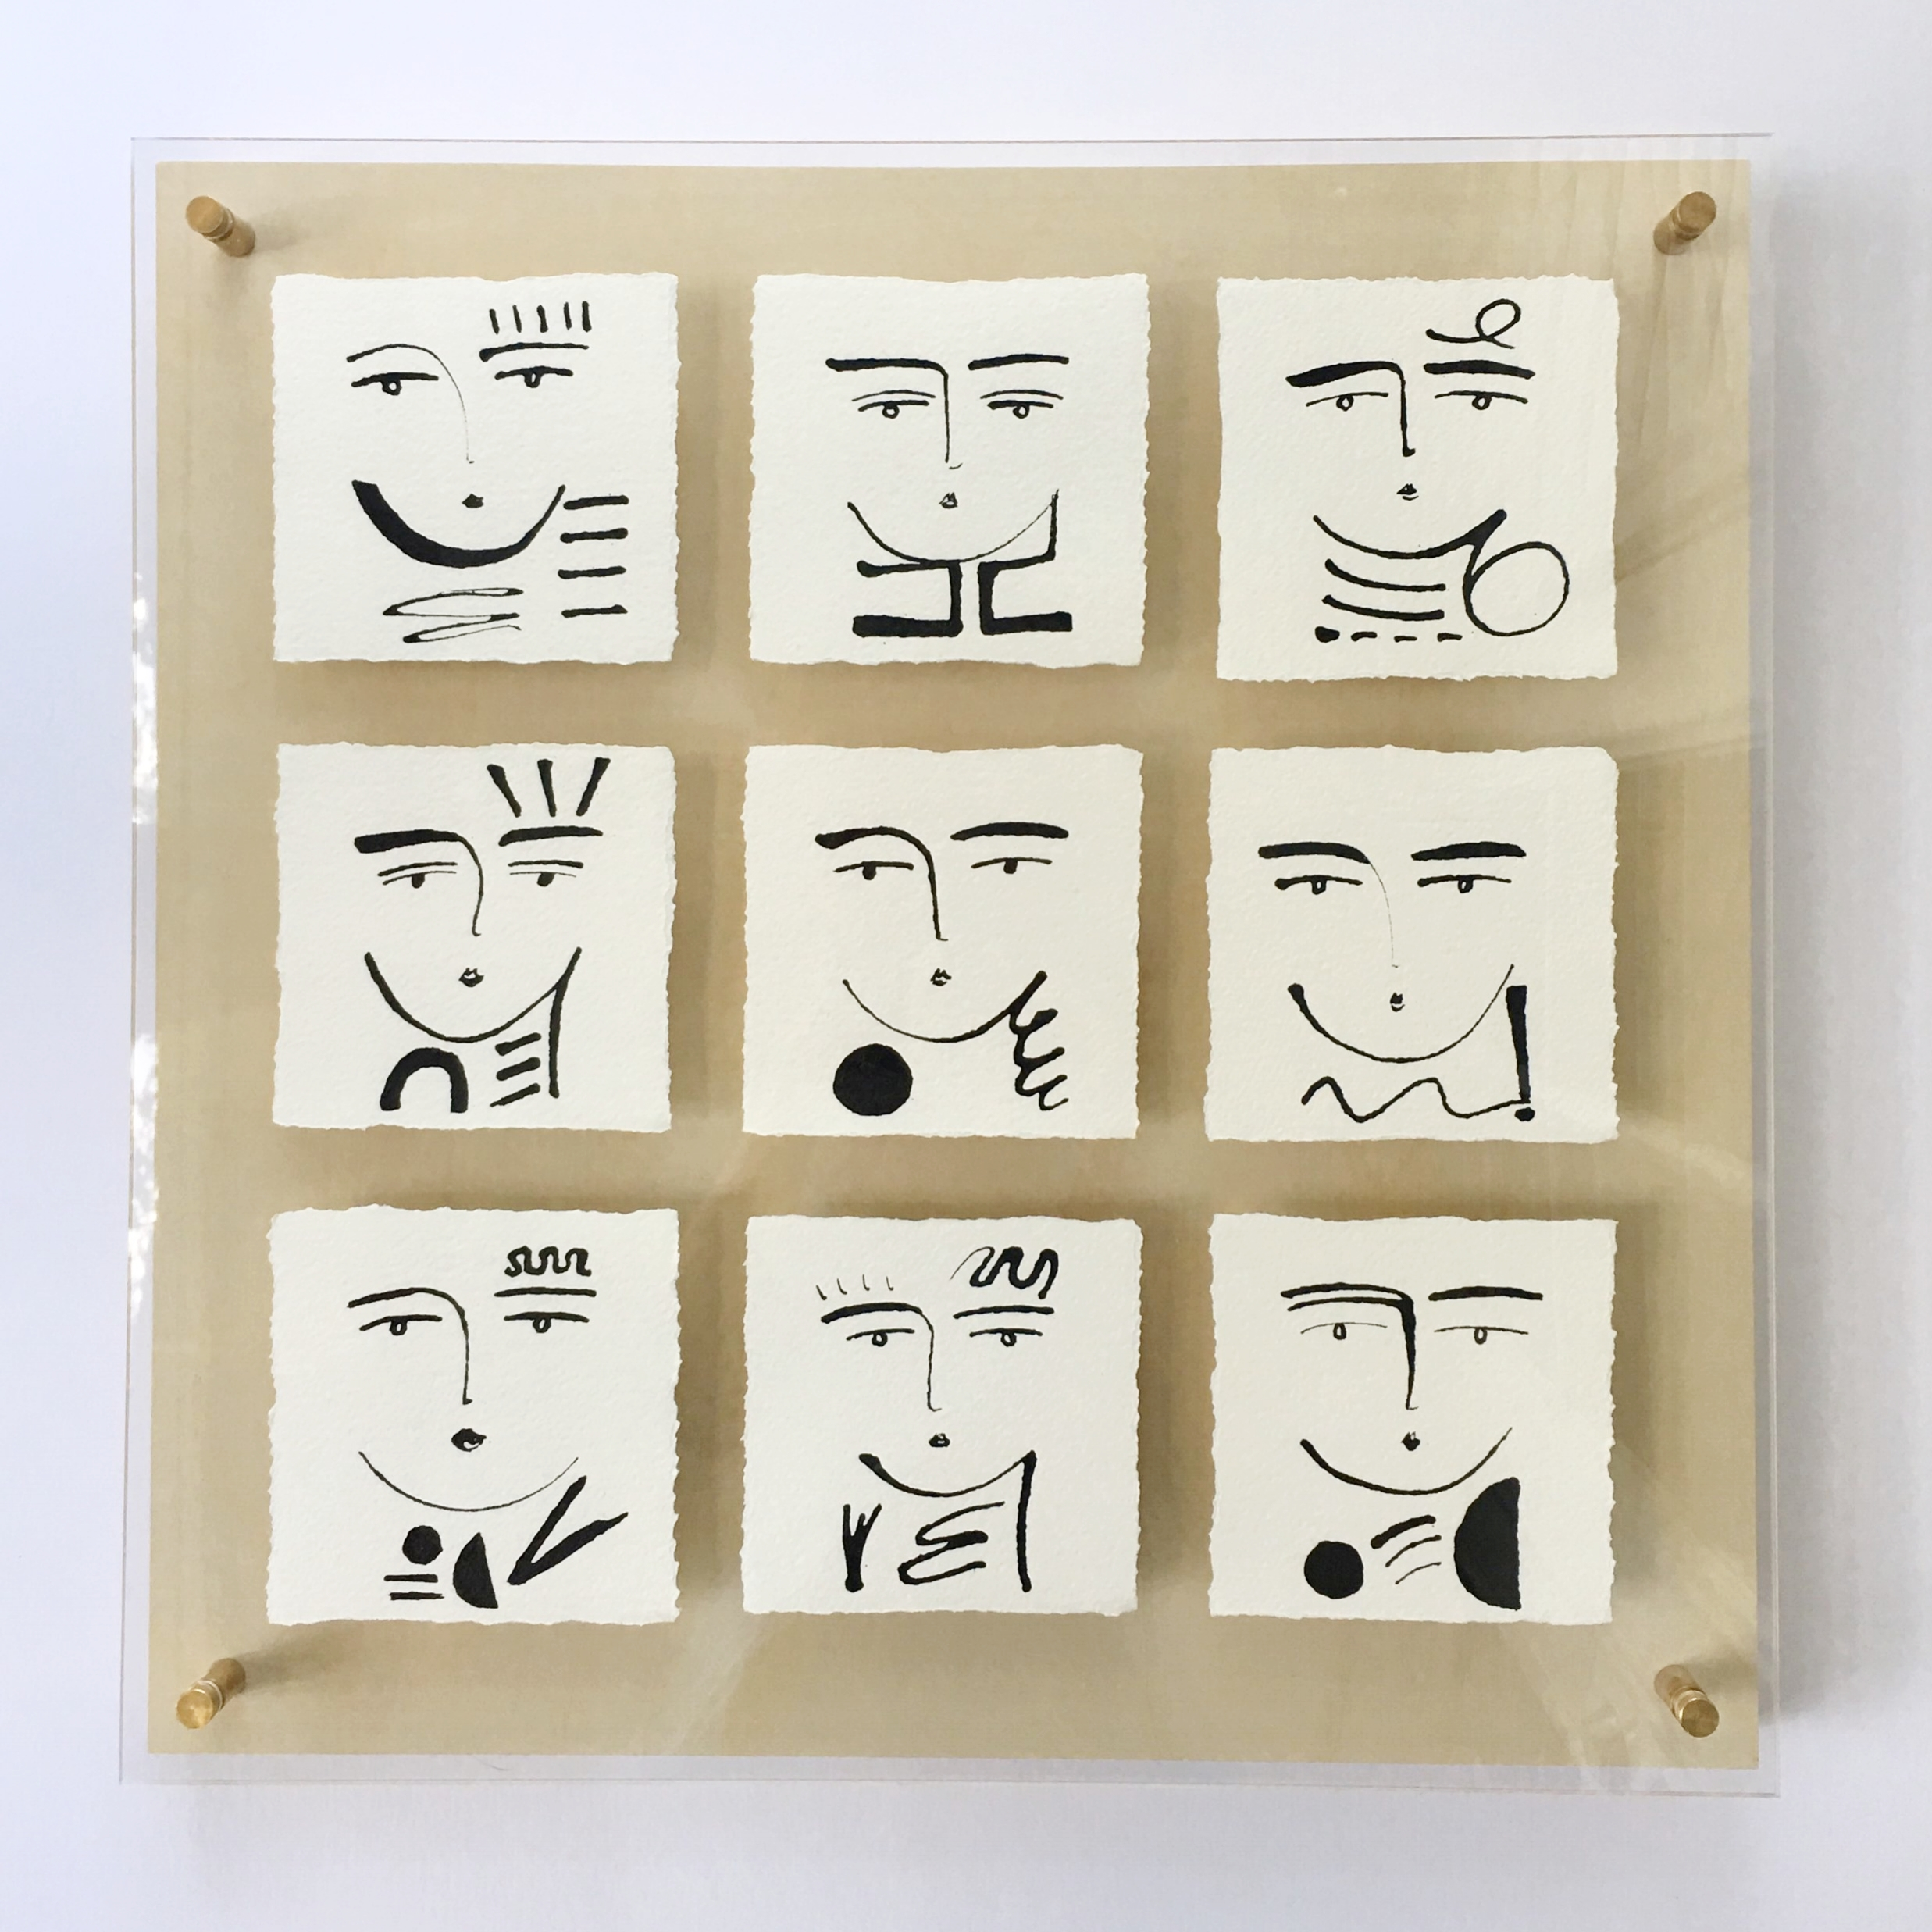 Phases of Faces III 2017 - 20x20 - Sold